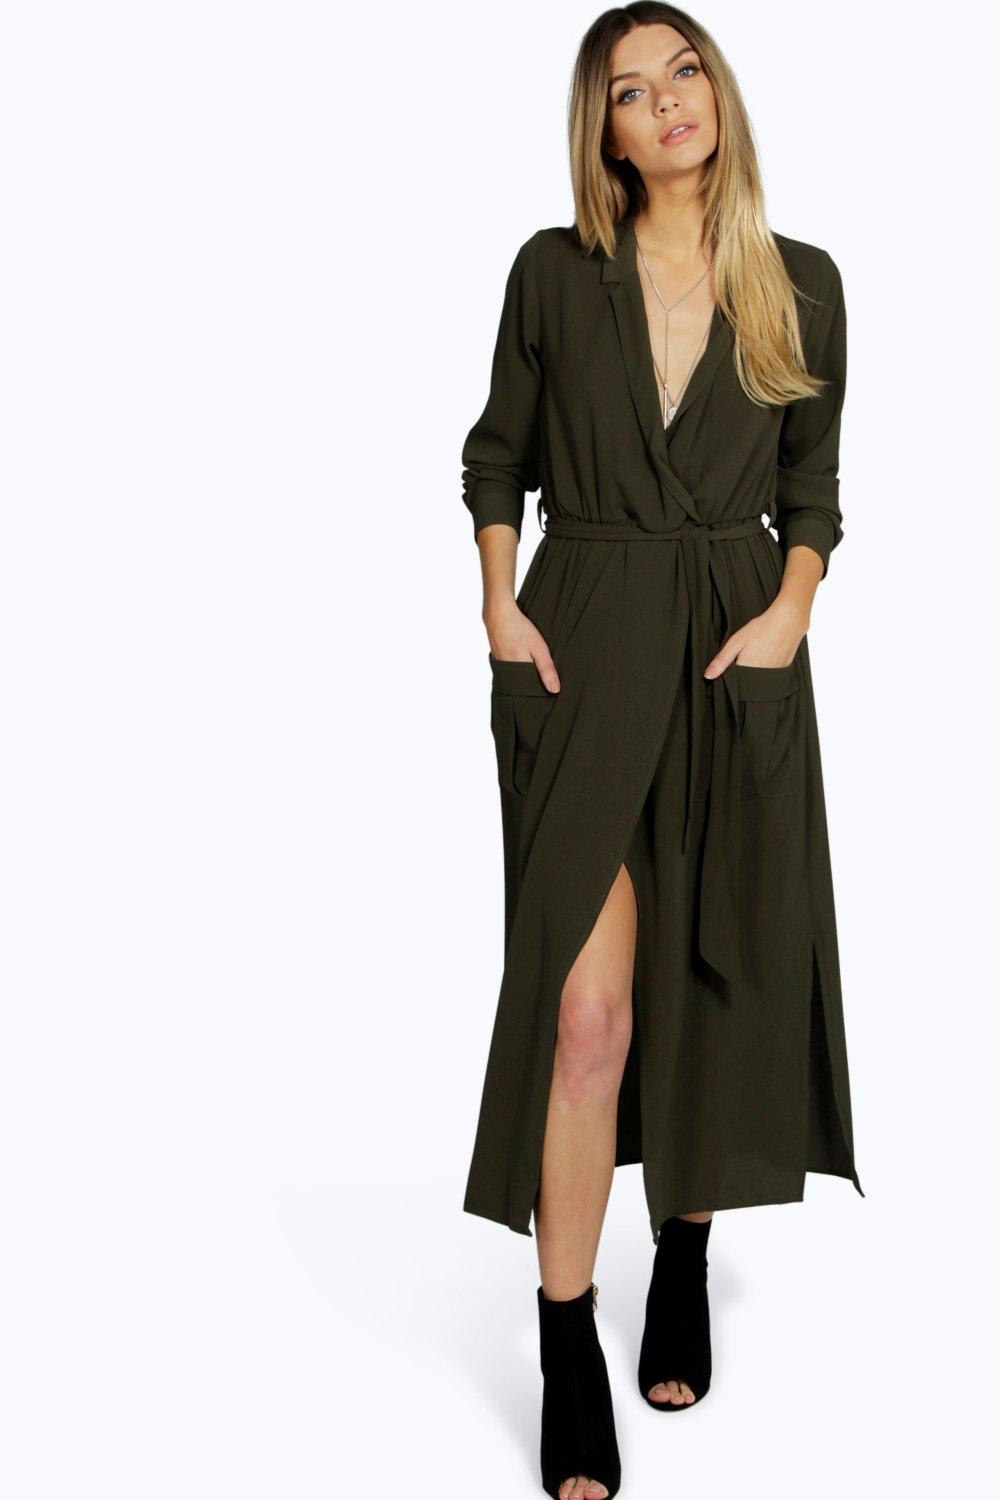 Free shipping BOTH ways on Dresses, Women, Long Sleeve, from our vast selection of styles. Fast delivery, and 24/7/ real-person service with a smile. Click or call